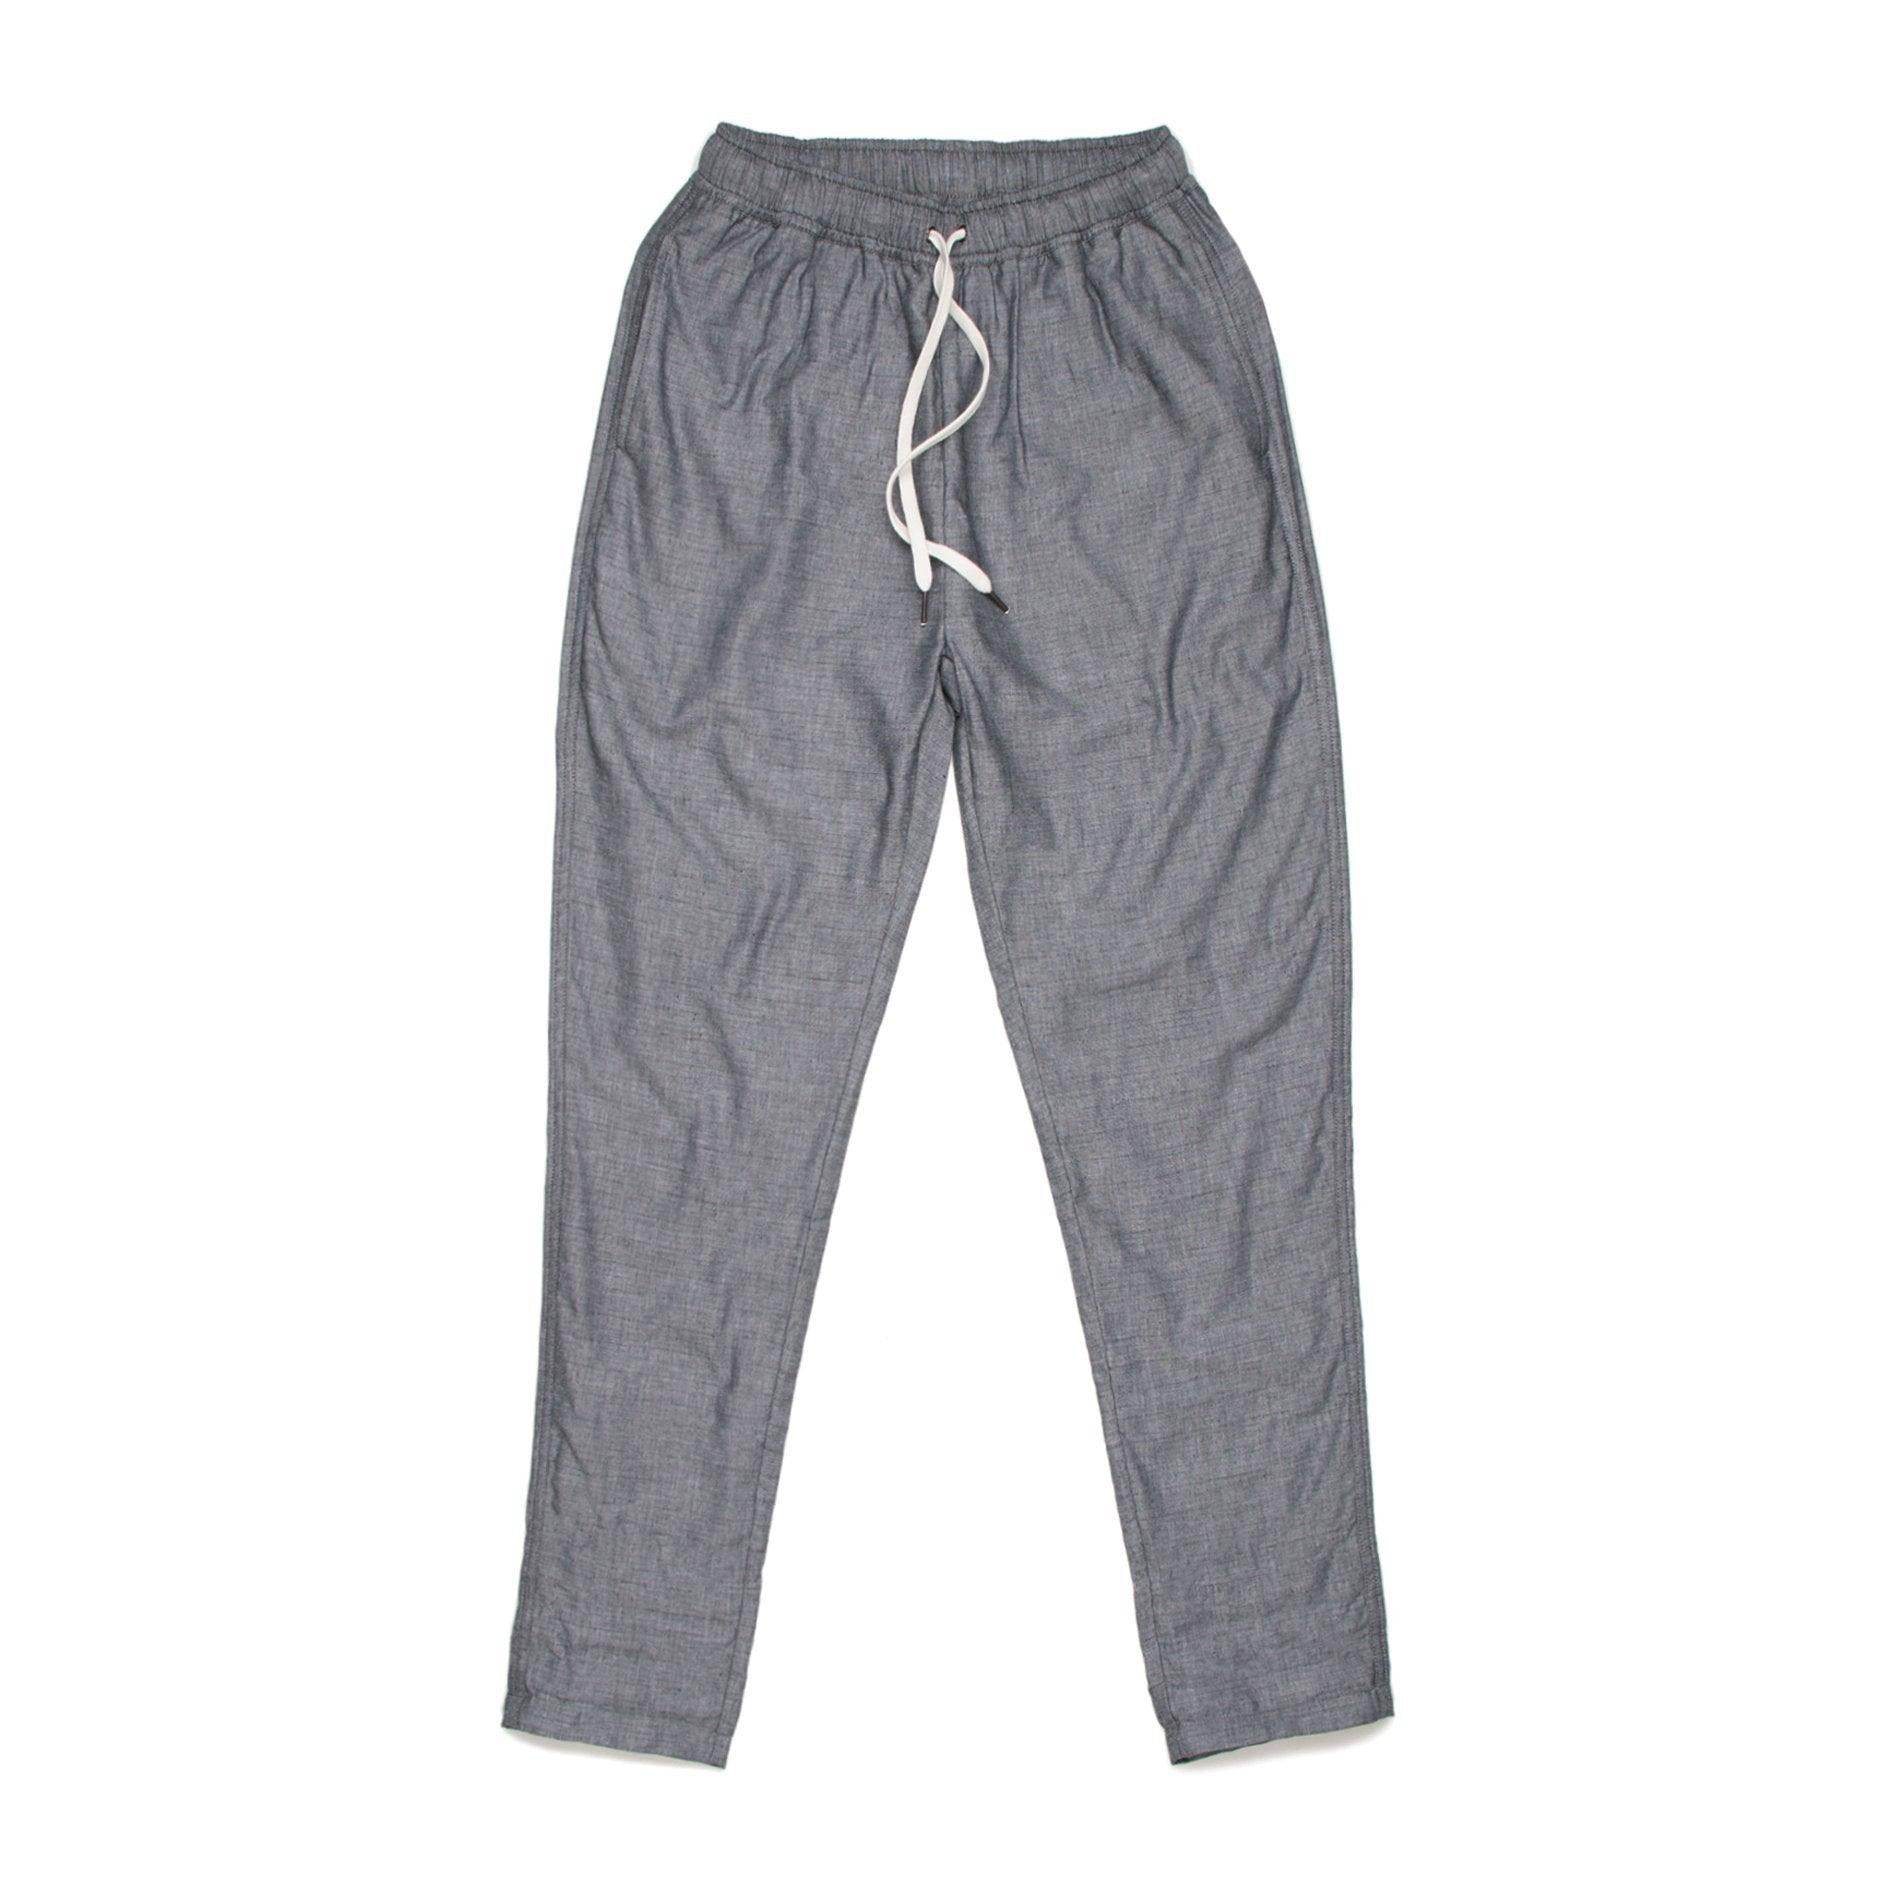 Woman's Cotton Pant